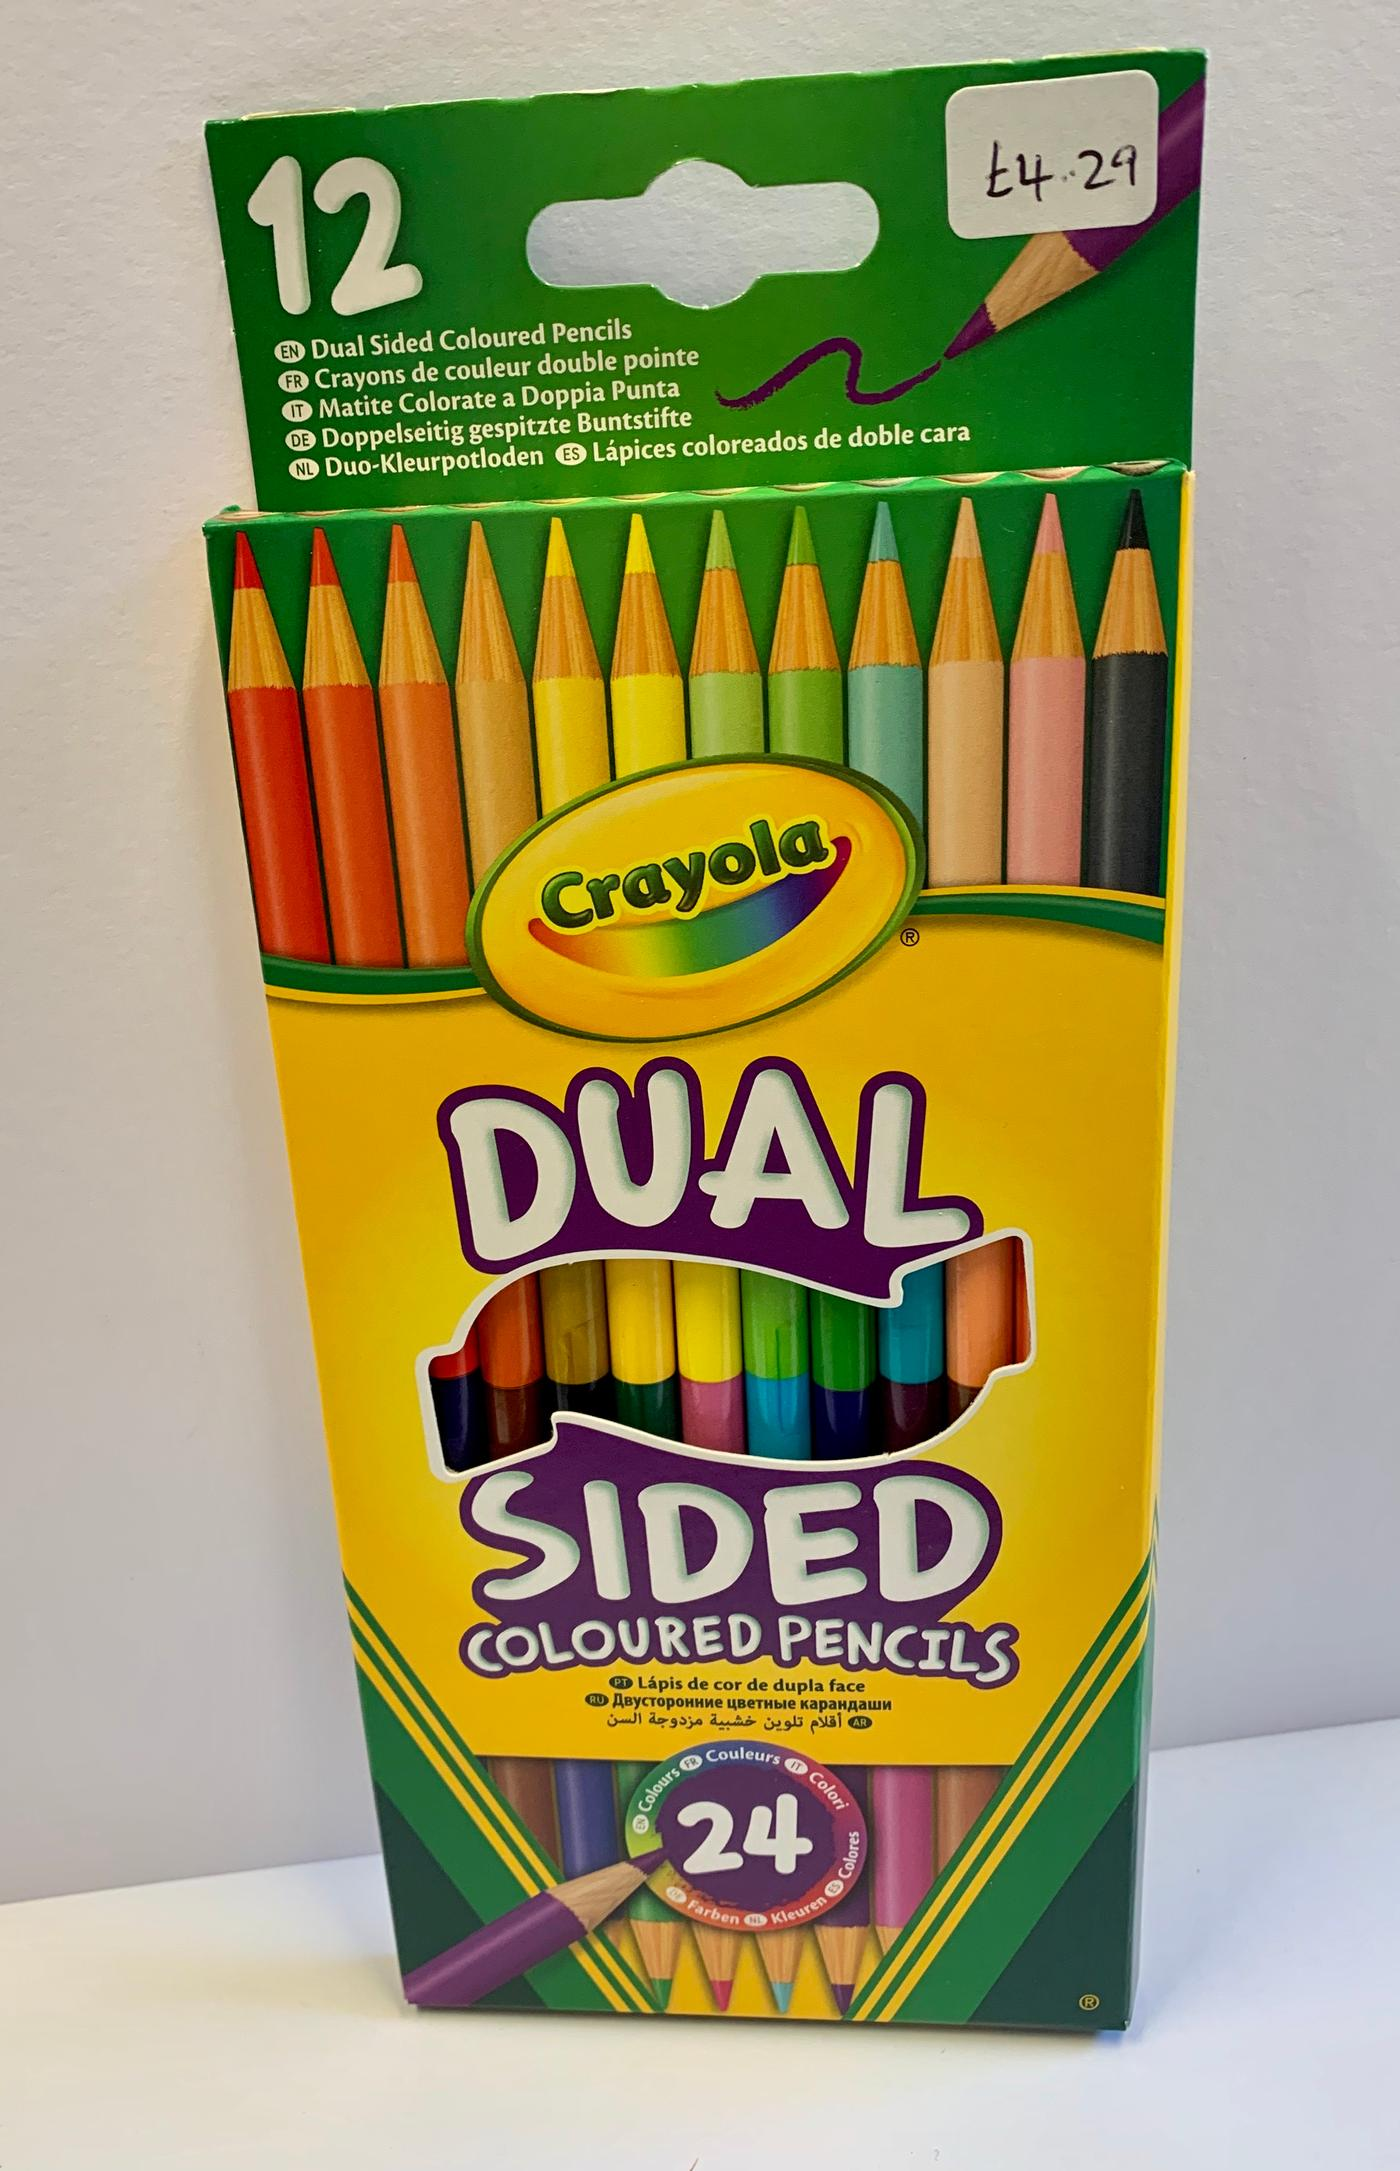 Crayola Dual Sided Coloured Pencils